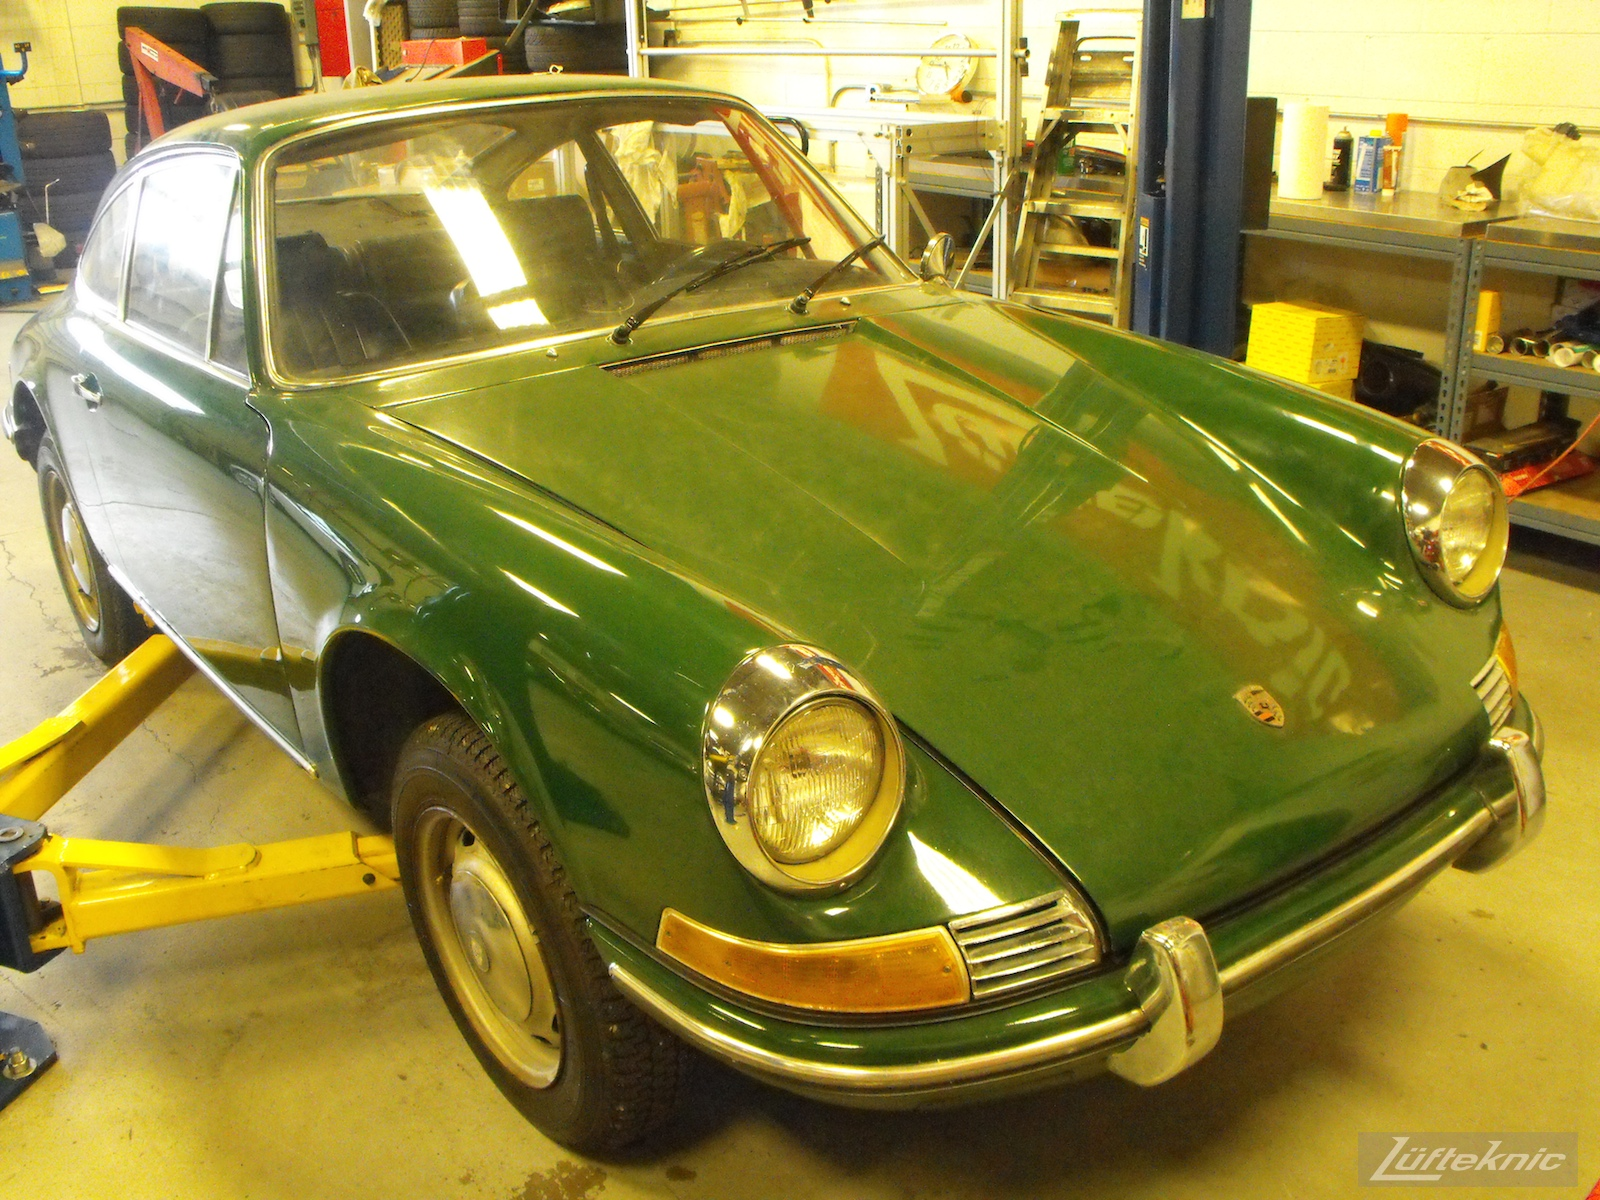 An Irish Green Porsche 912 undergoing restoration at Lufteknic with the car on a lift, showing original paint and trim.